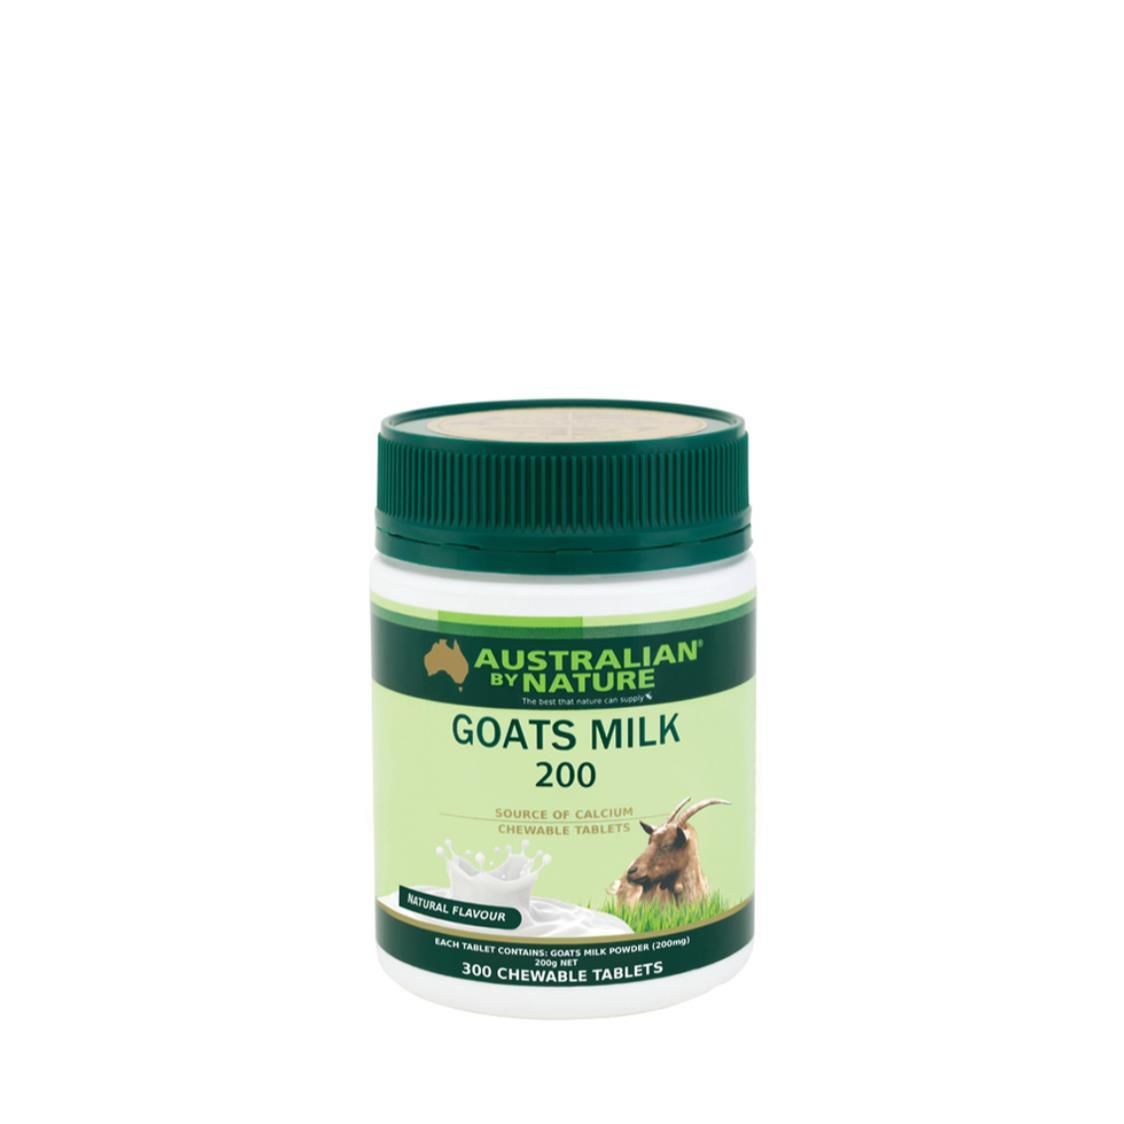 Australian By Nature Goats Milk 200mg Natural Flavour 300 Tablets